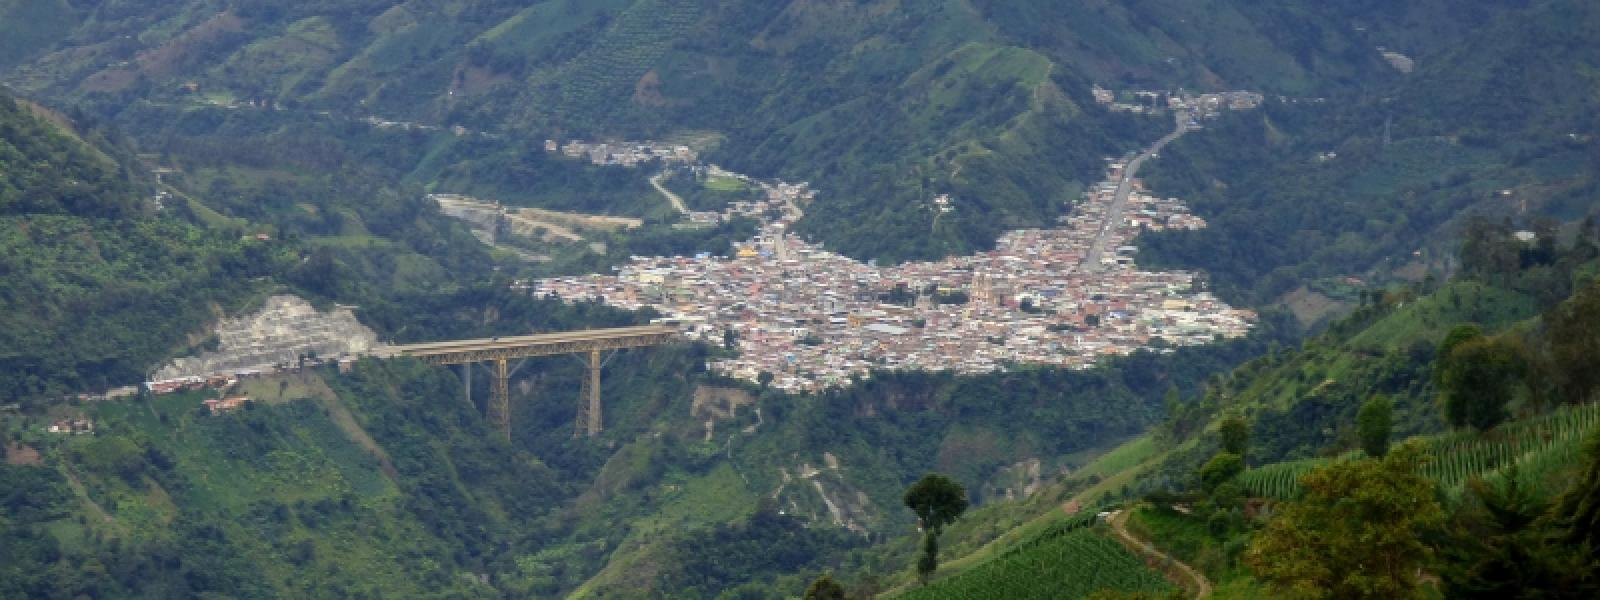 The small town of Cajamarca, Colombia